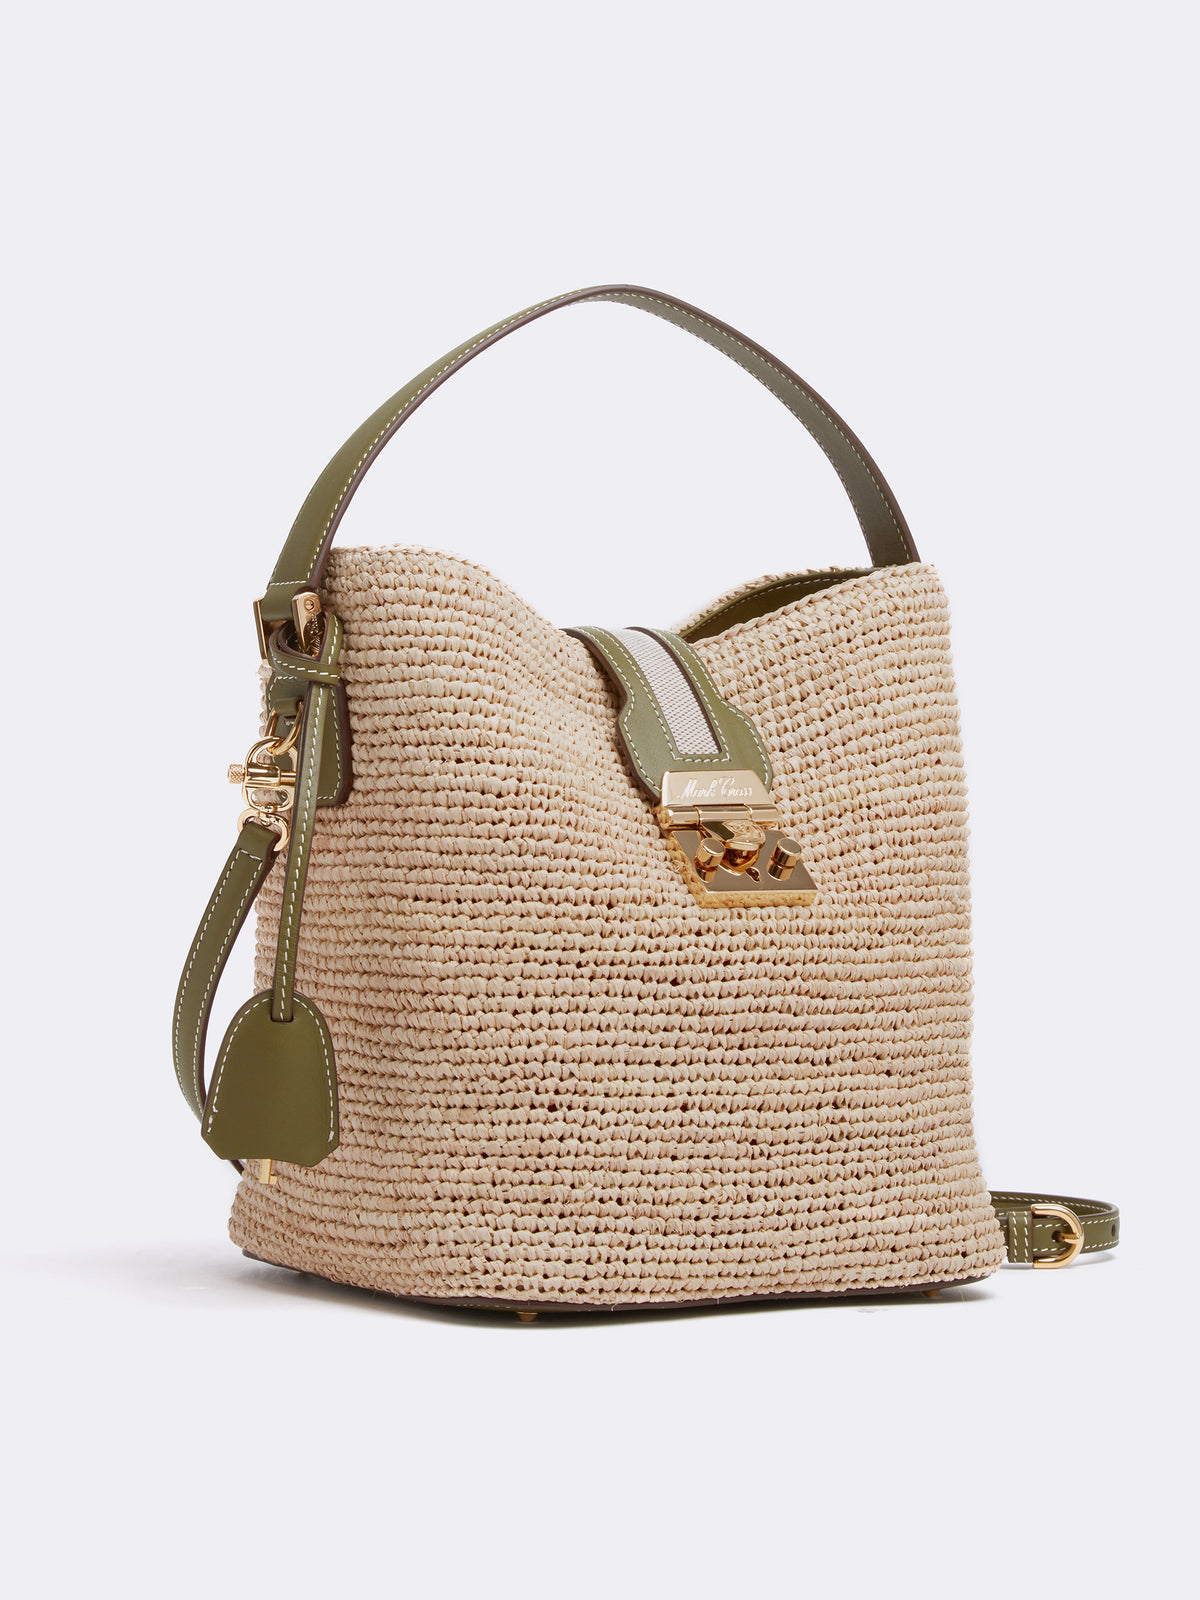 Mark Cross Murphy Raffia & Leather Bucket Bag Tumbled Grain Avocado / Birdseye / Natural Raffia Side